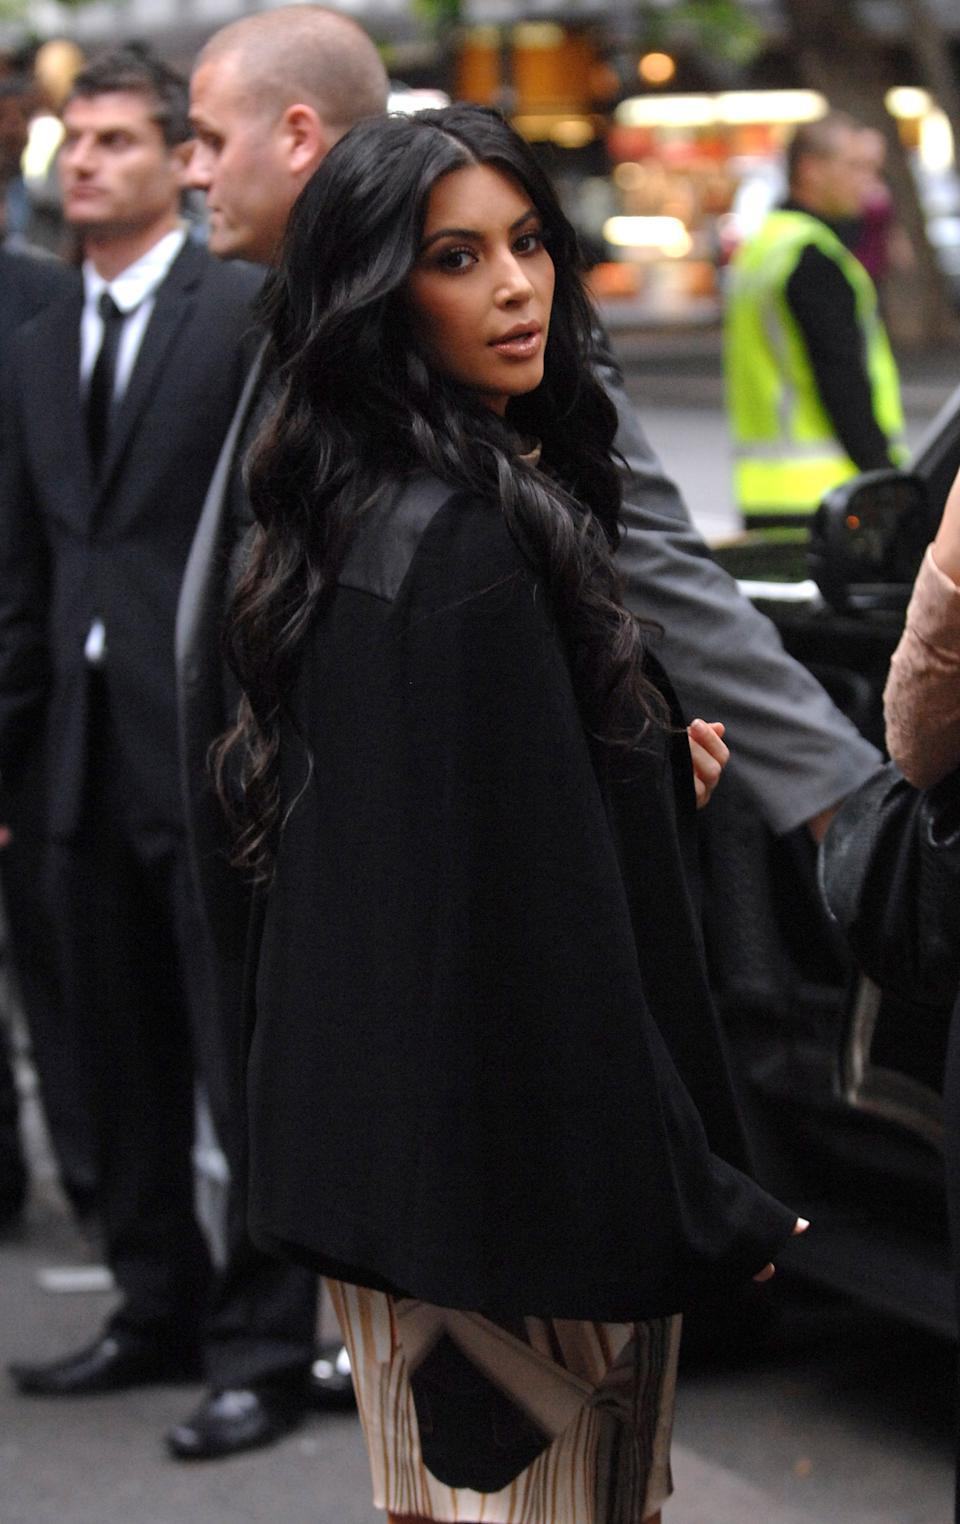 American reality television celebrity Kim Kardashian arrives at the launch of her handbag fashion range in Sydney, Australia on Wednesday Nov. 2, 2011. (AP Photo/ Jeremy Piper)